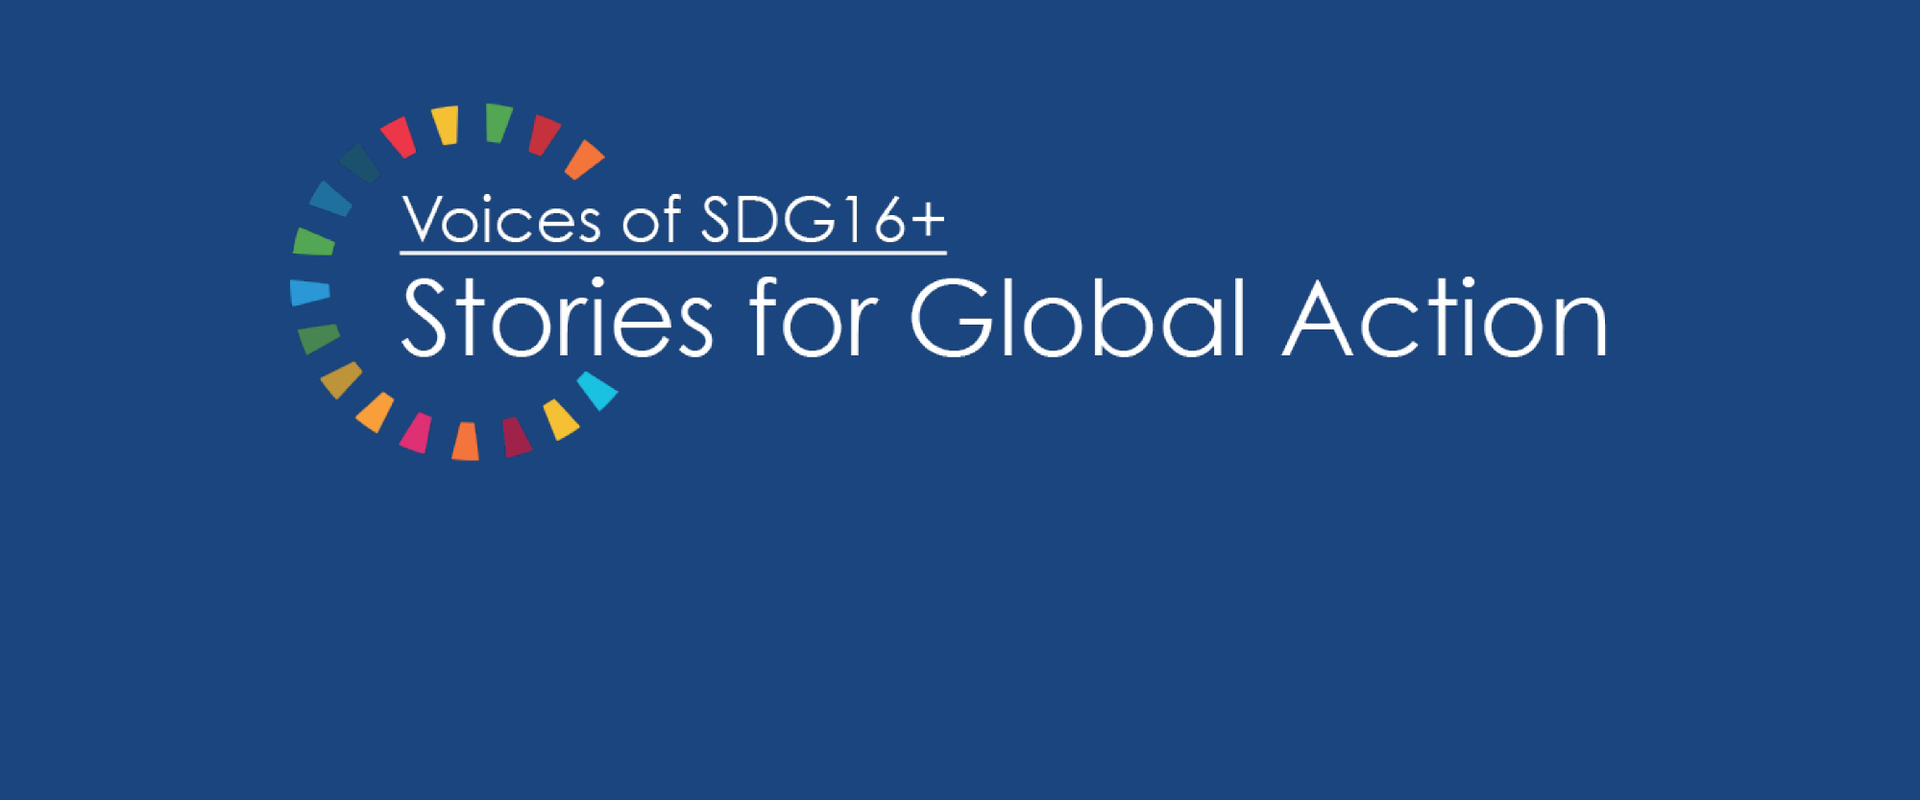 Voices of SDG16+ Stories for Global Action | Peace Insight